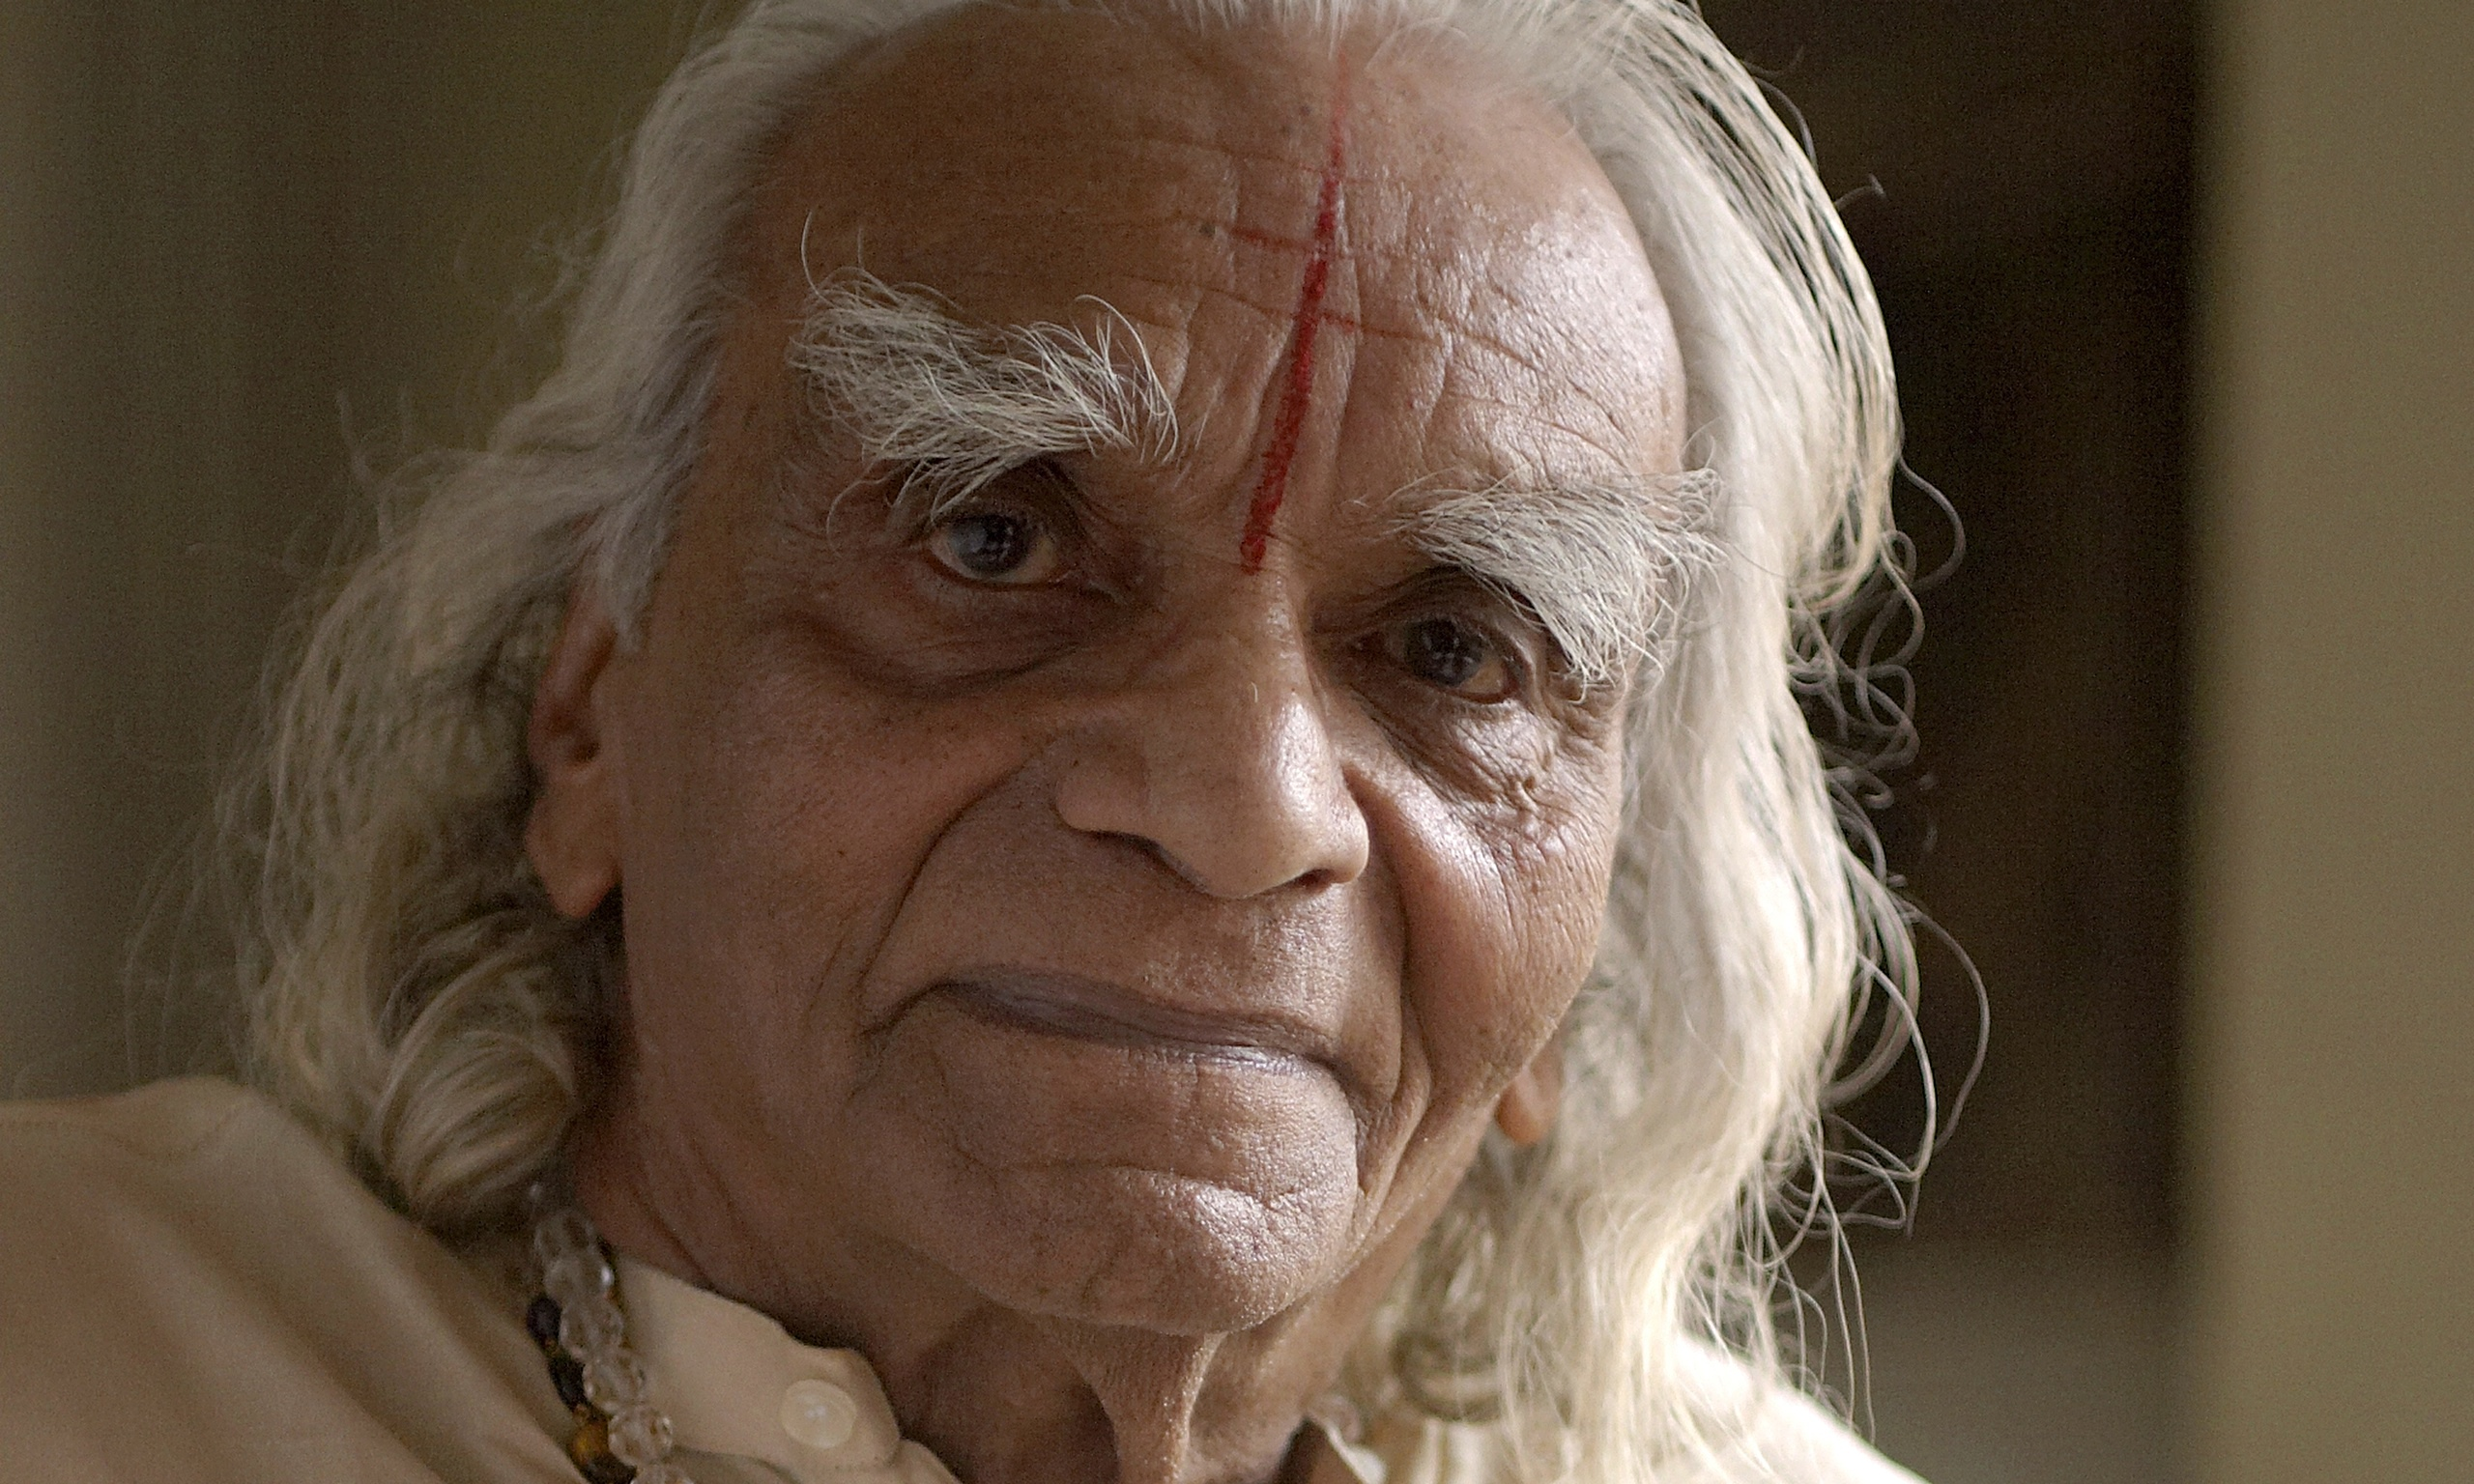 bks iyengar indian guru who sparked global yoga craze dies aged 95 life and style the guardian. Black Bedroom Furniture Sets. Home Design Ideas